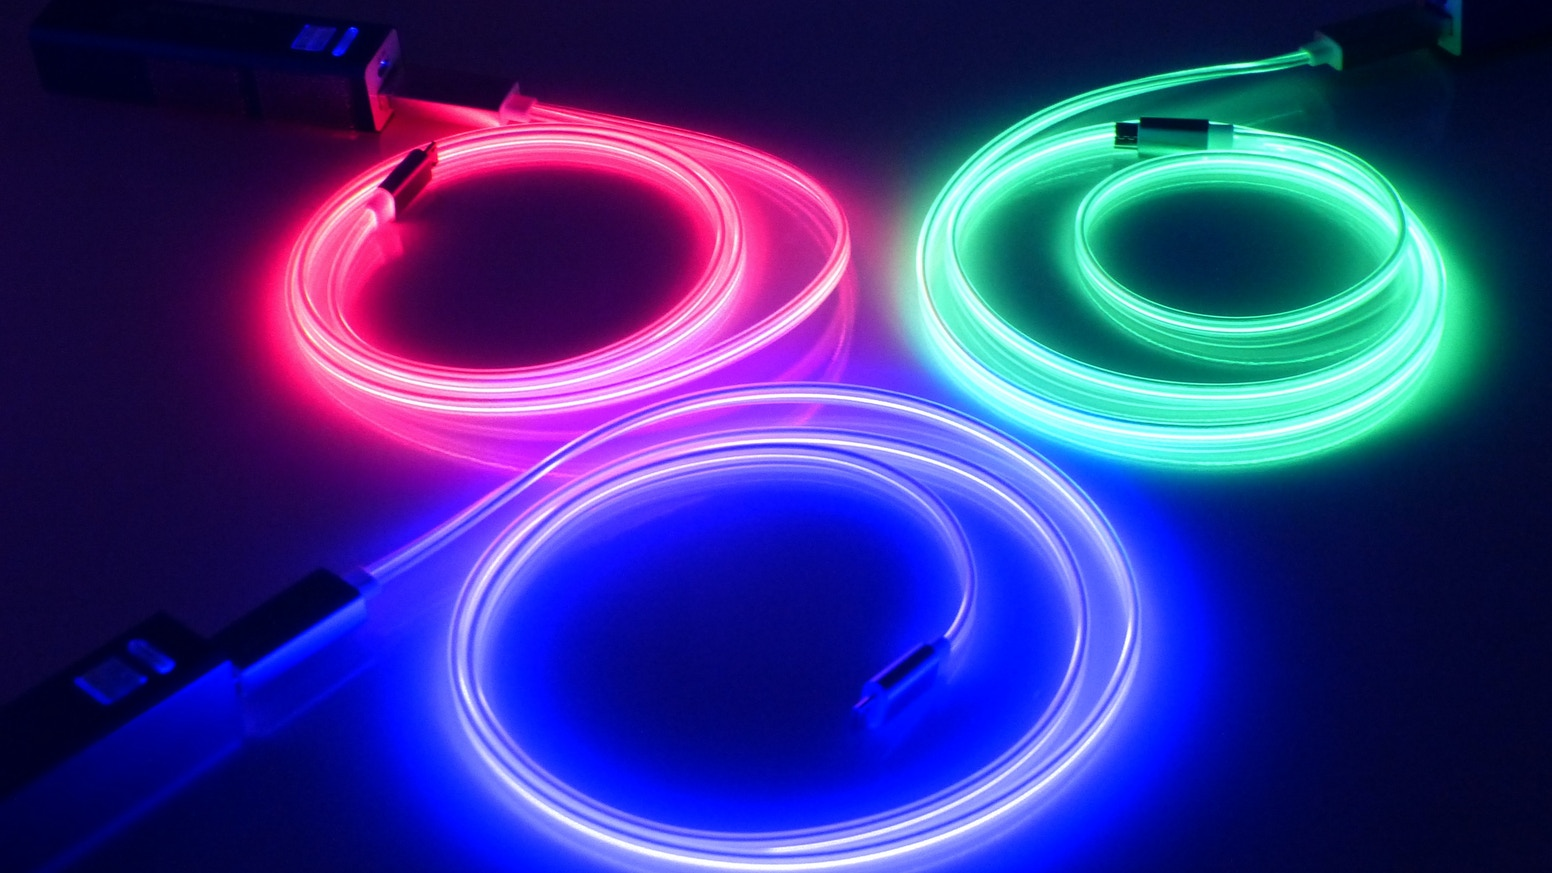 Charge all your Apple, Android, and Windows Smart Devices with our USB charging cable that pulsates and glows with laser light.